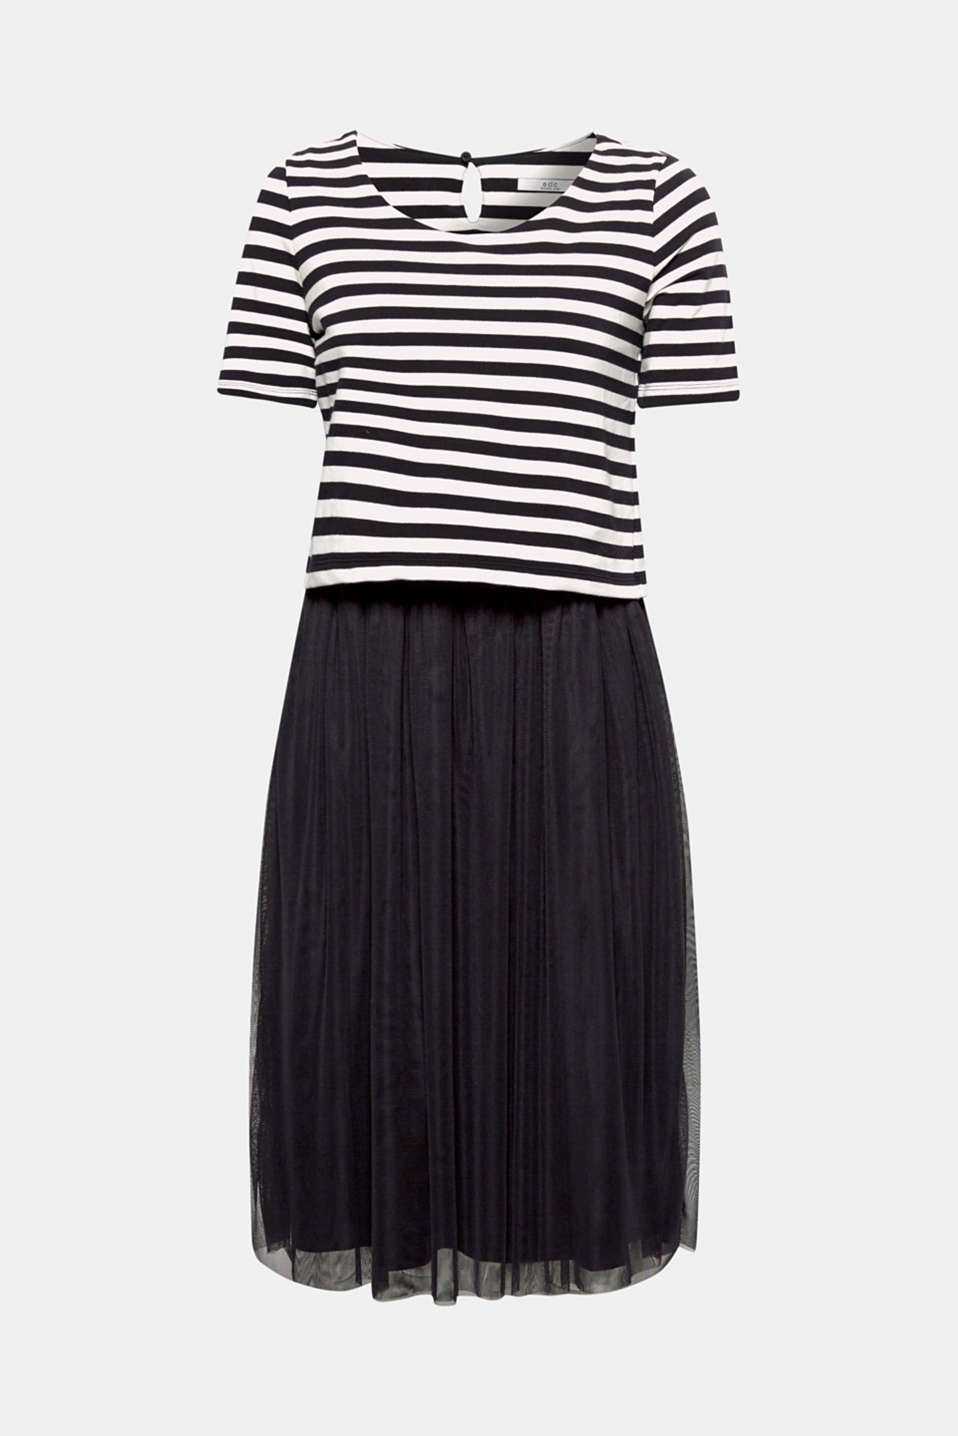 2-in-1: A striped sweatshirt top combined with an airy mesh skirt - this dress stands out thanks to its exciting material mix look!